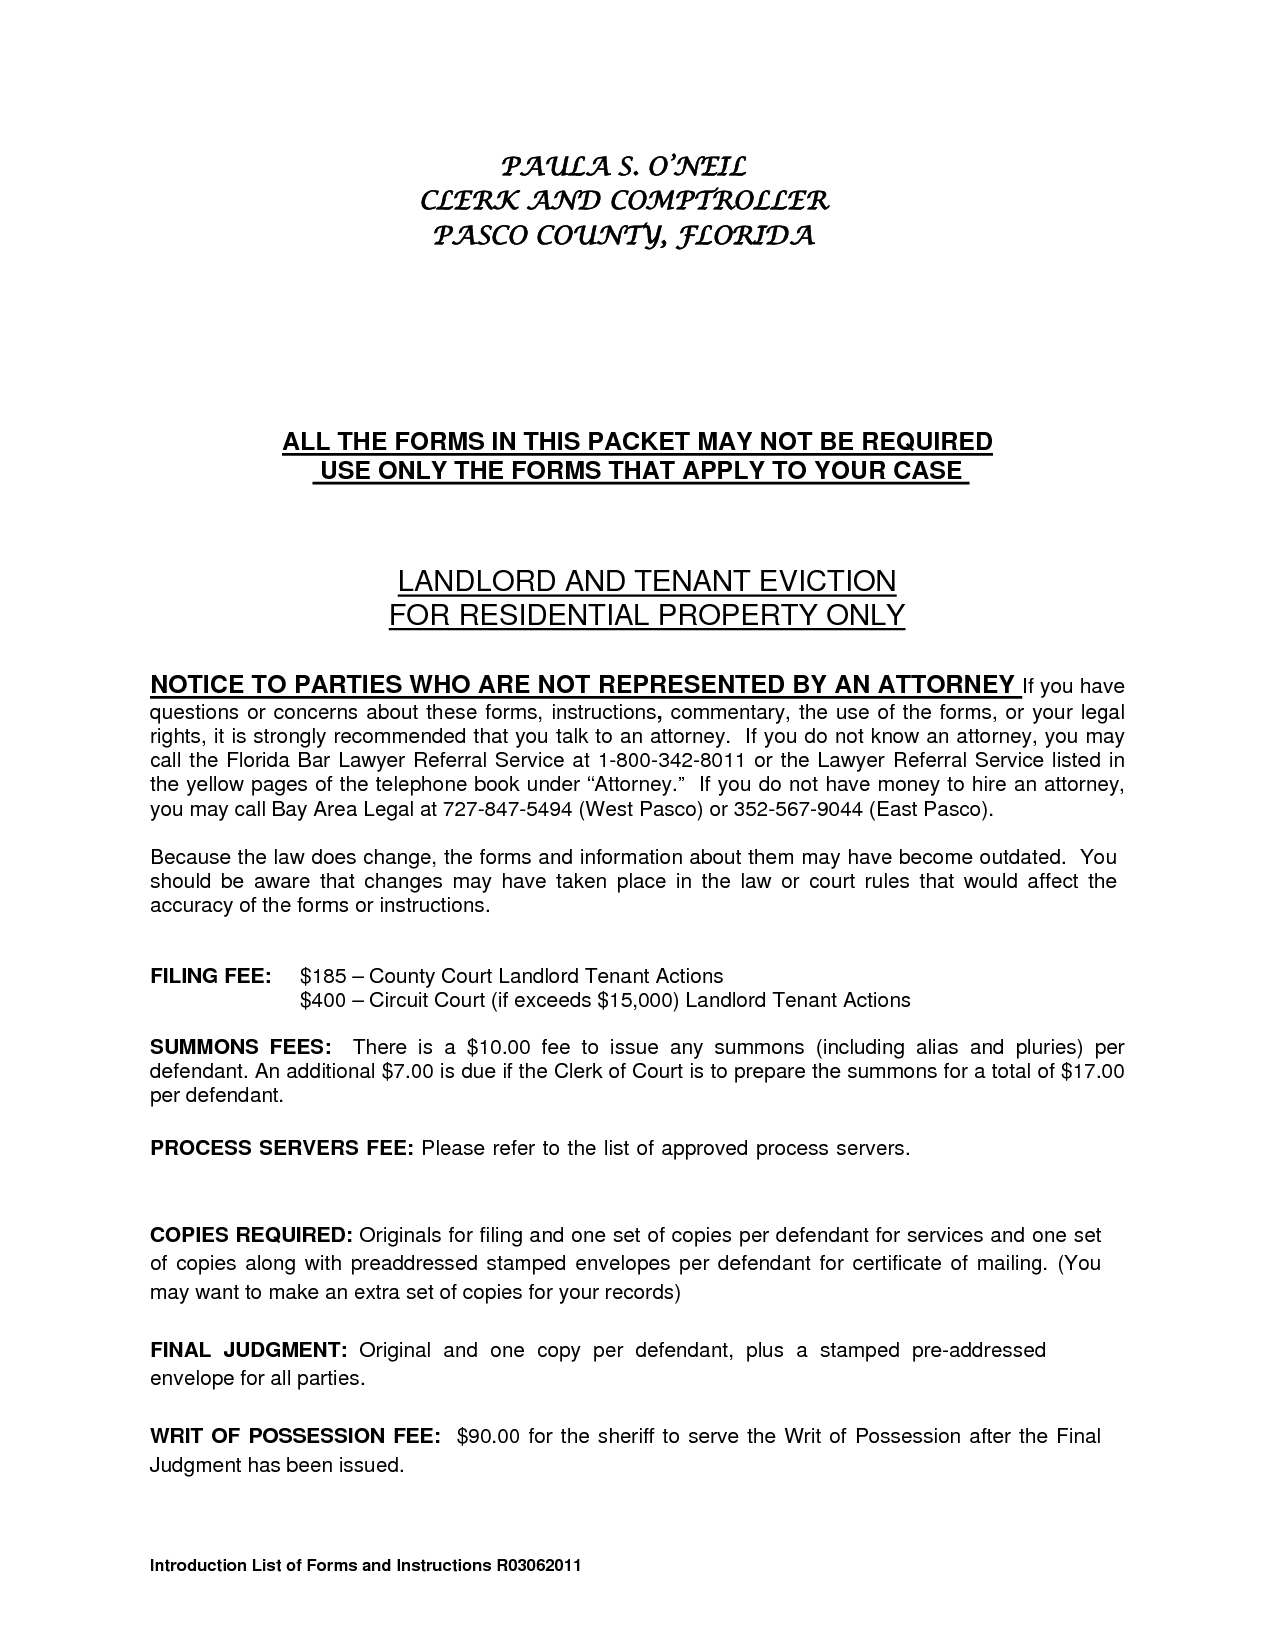 Renters Insurance Letter Template - Residential Landlord Tenant Eviction Notice form by Ere